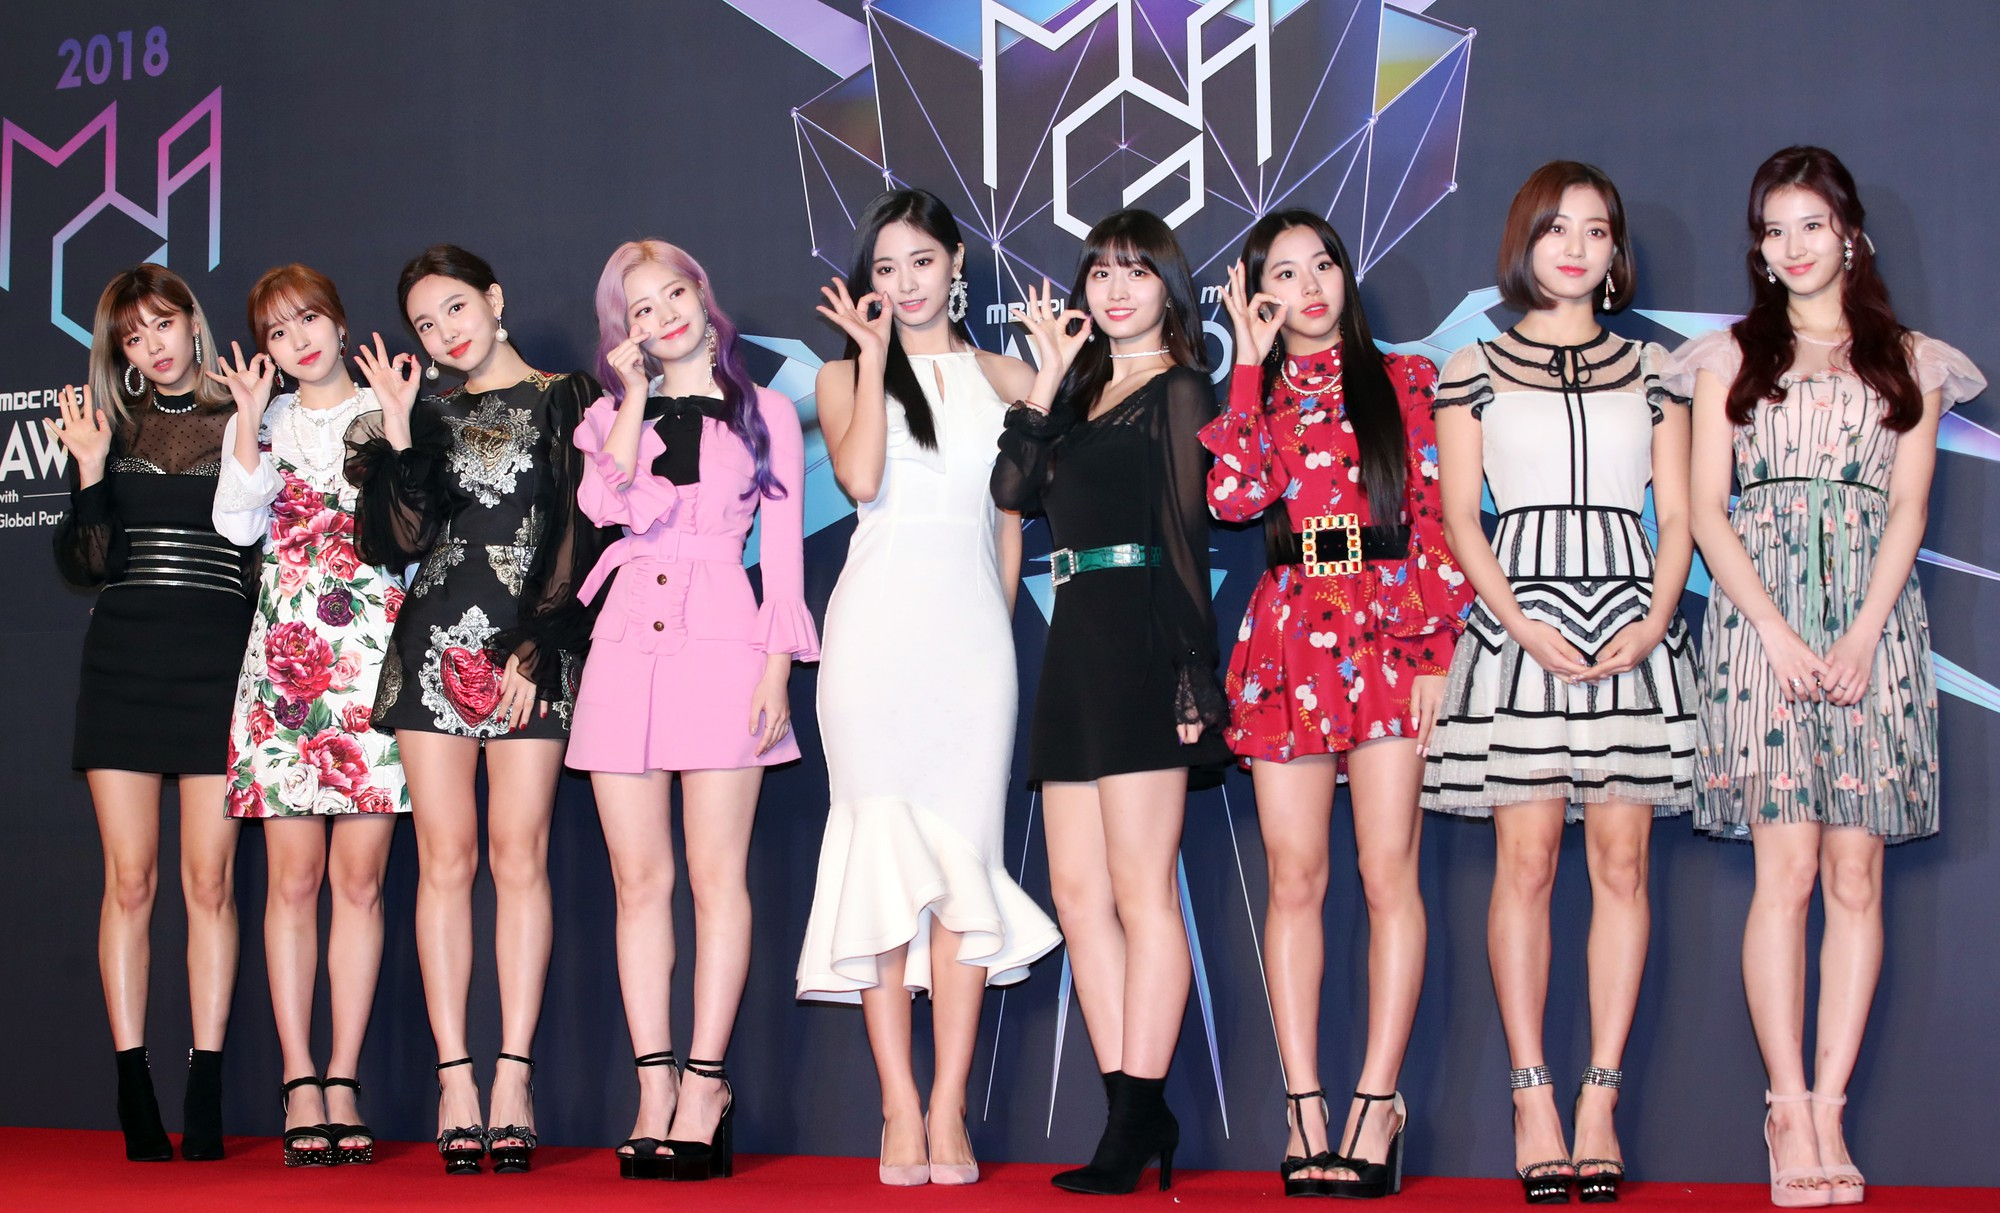 Image result for nayeon twice mga 2018 red carpet